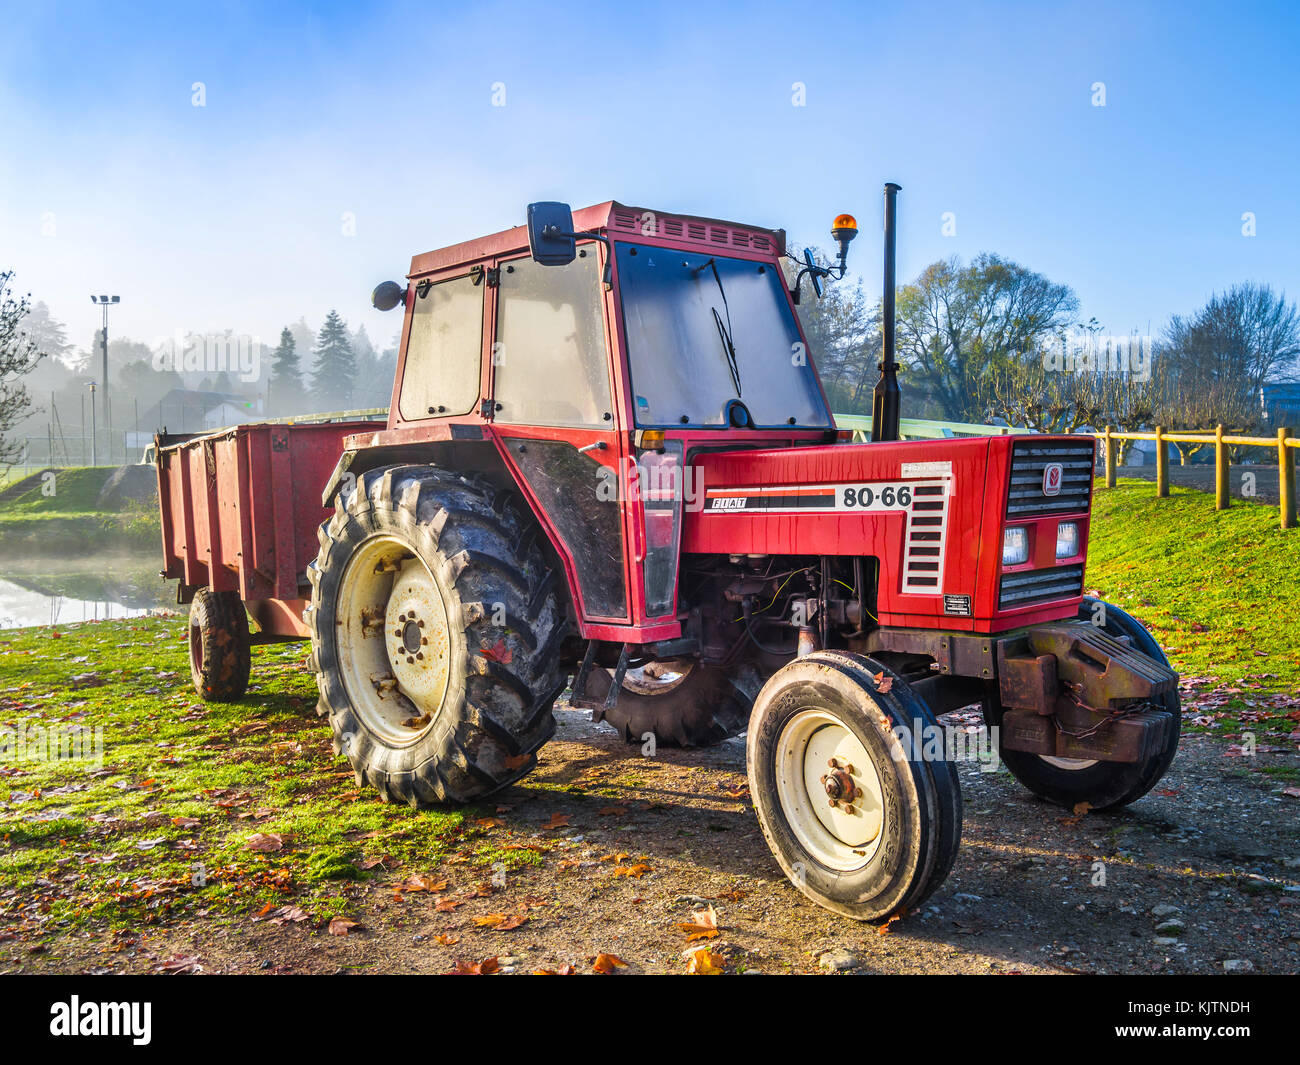 1996 Fiat 80-66 agricultural tractor - France. - Stock Image